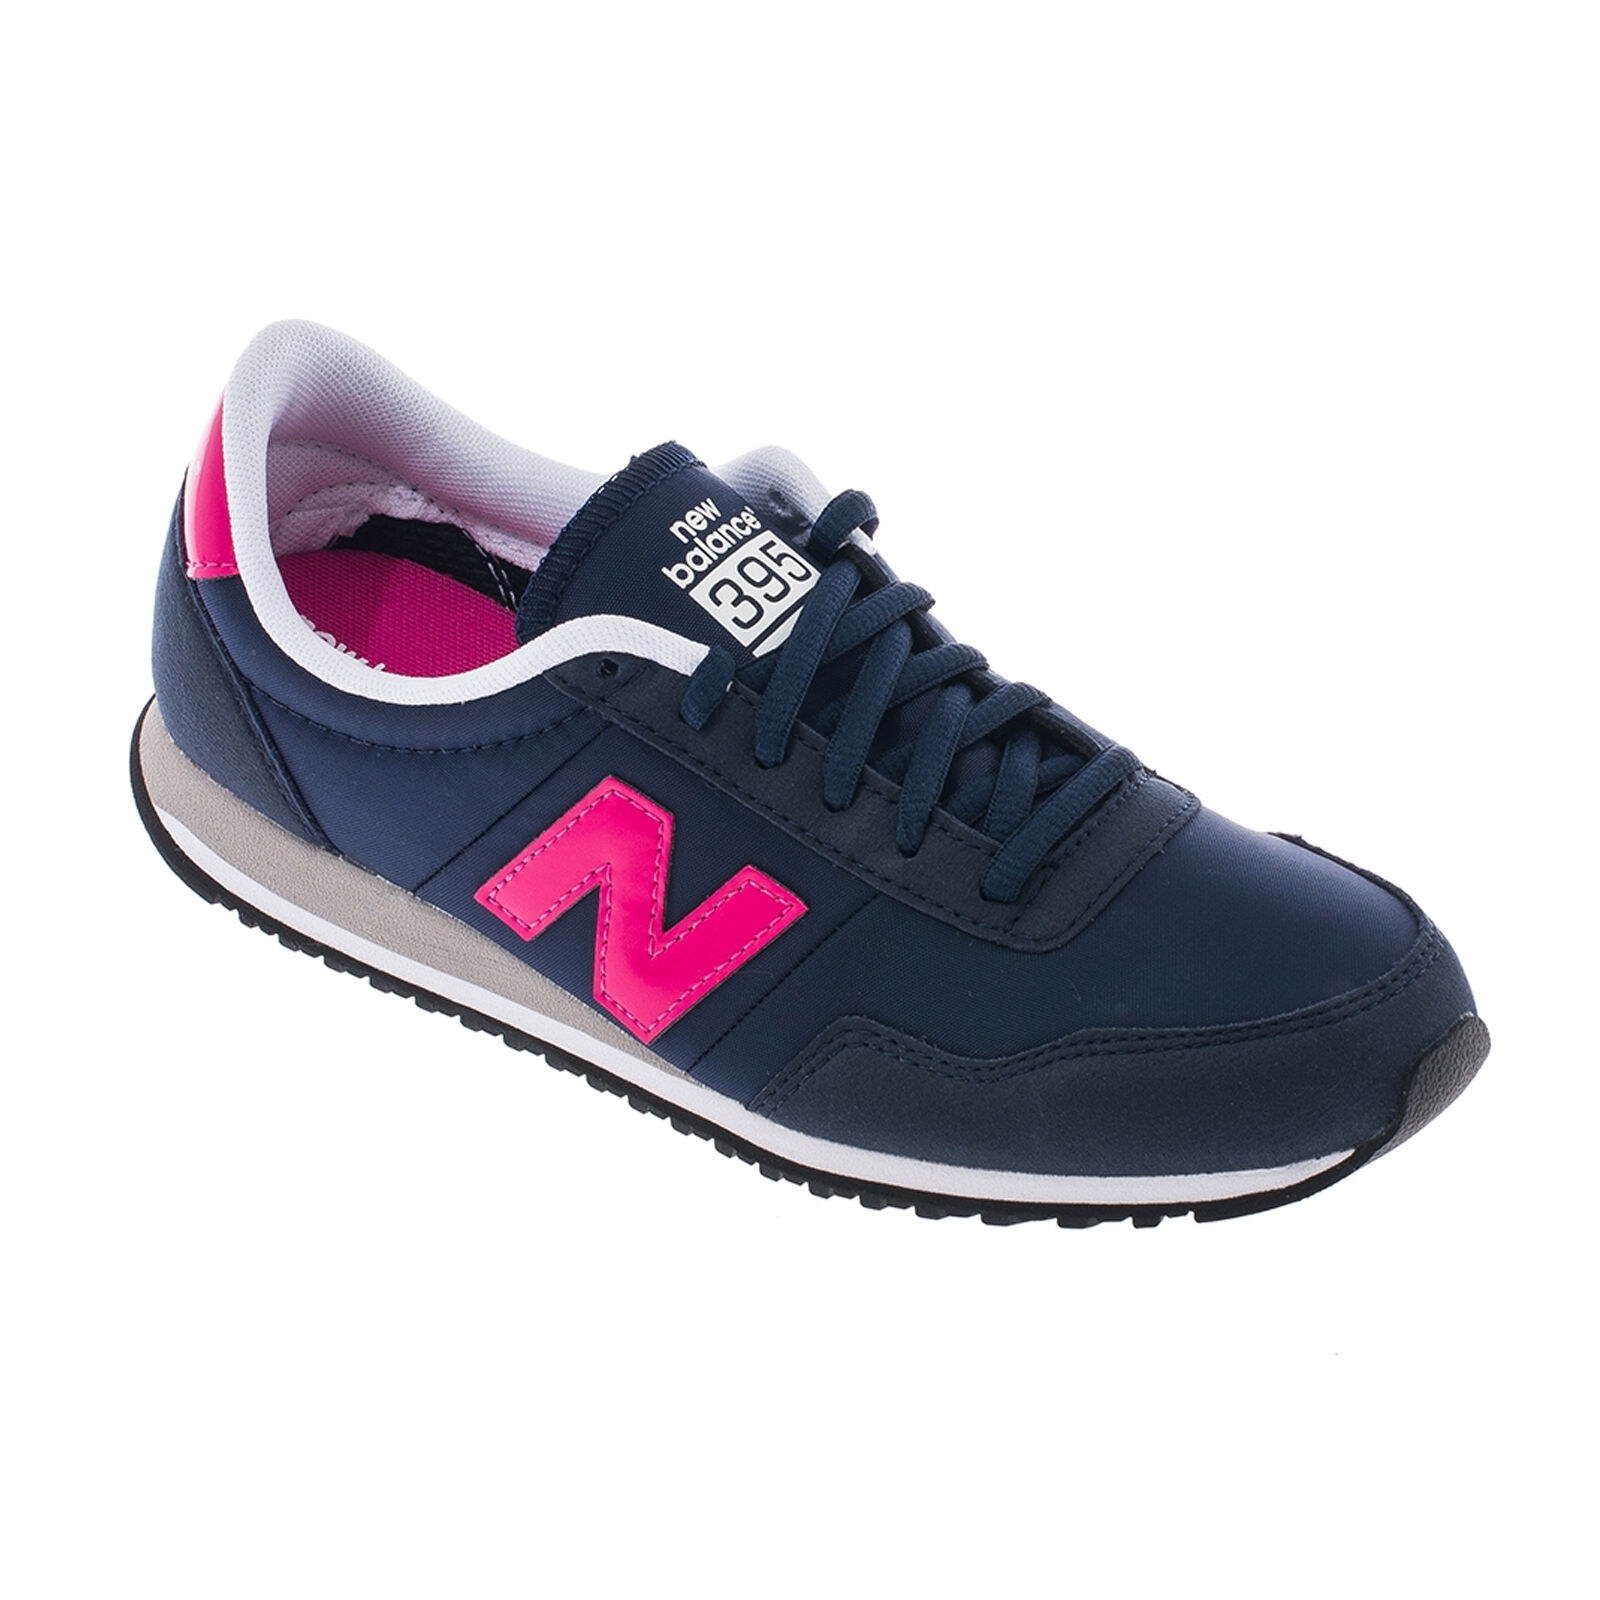 NEW BALANCE shoes bluee Trainers Wedge US 8 CM 26